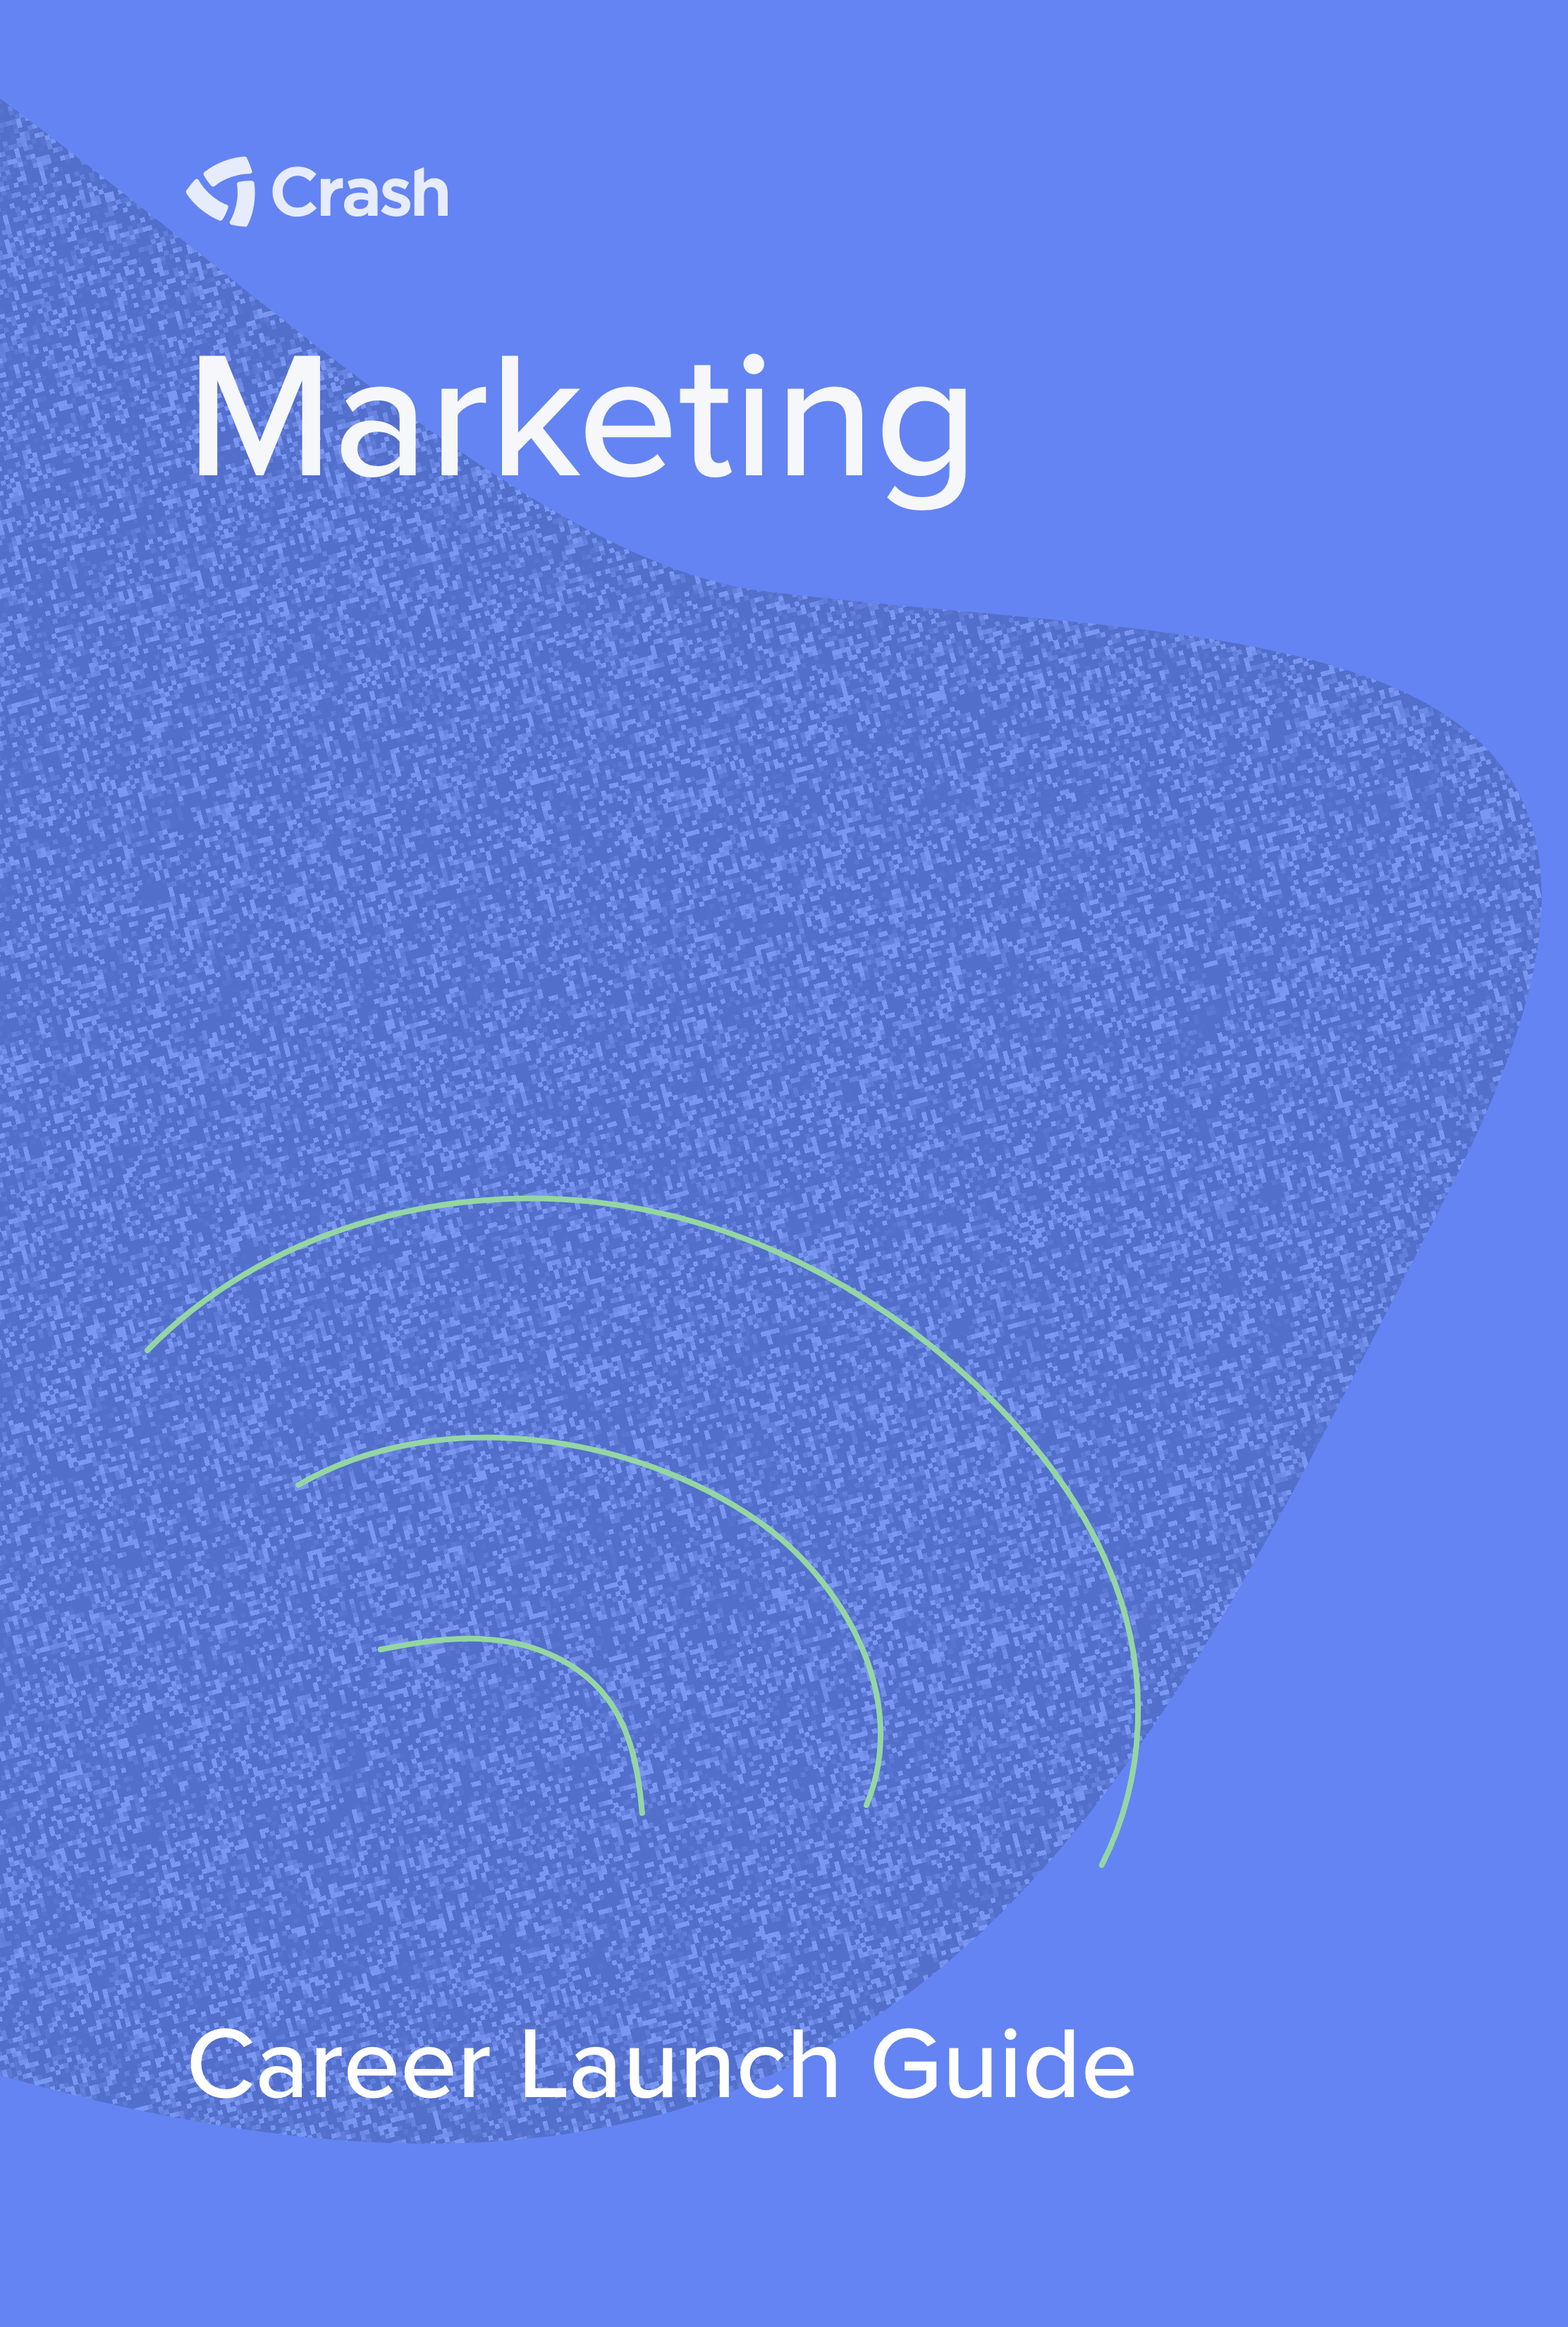 marketing career crash guide cover image